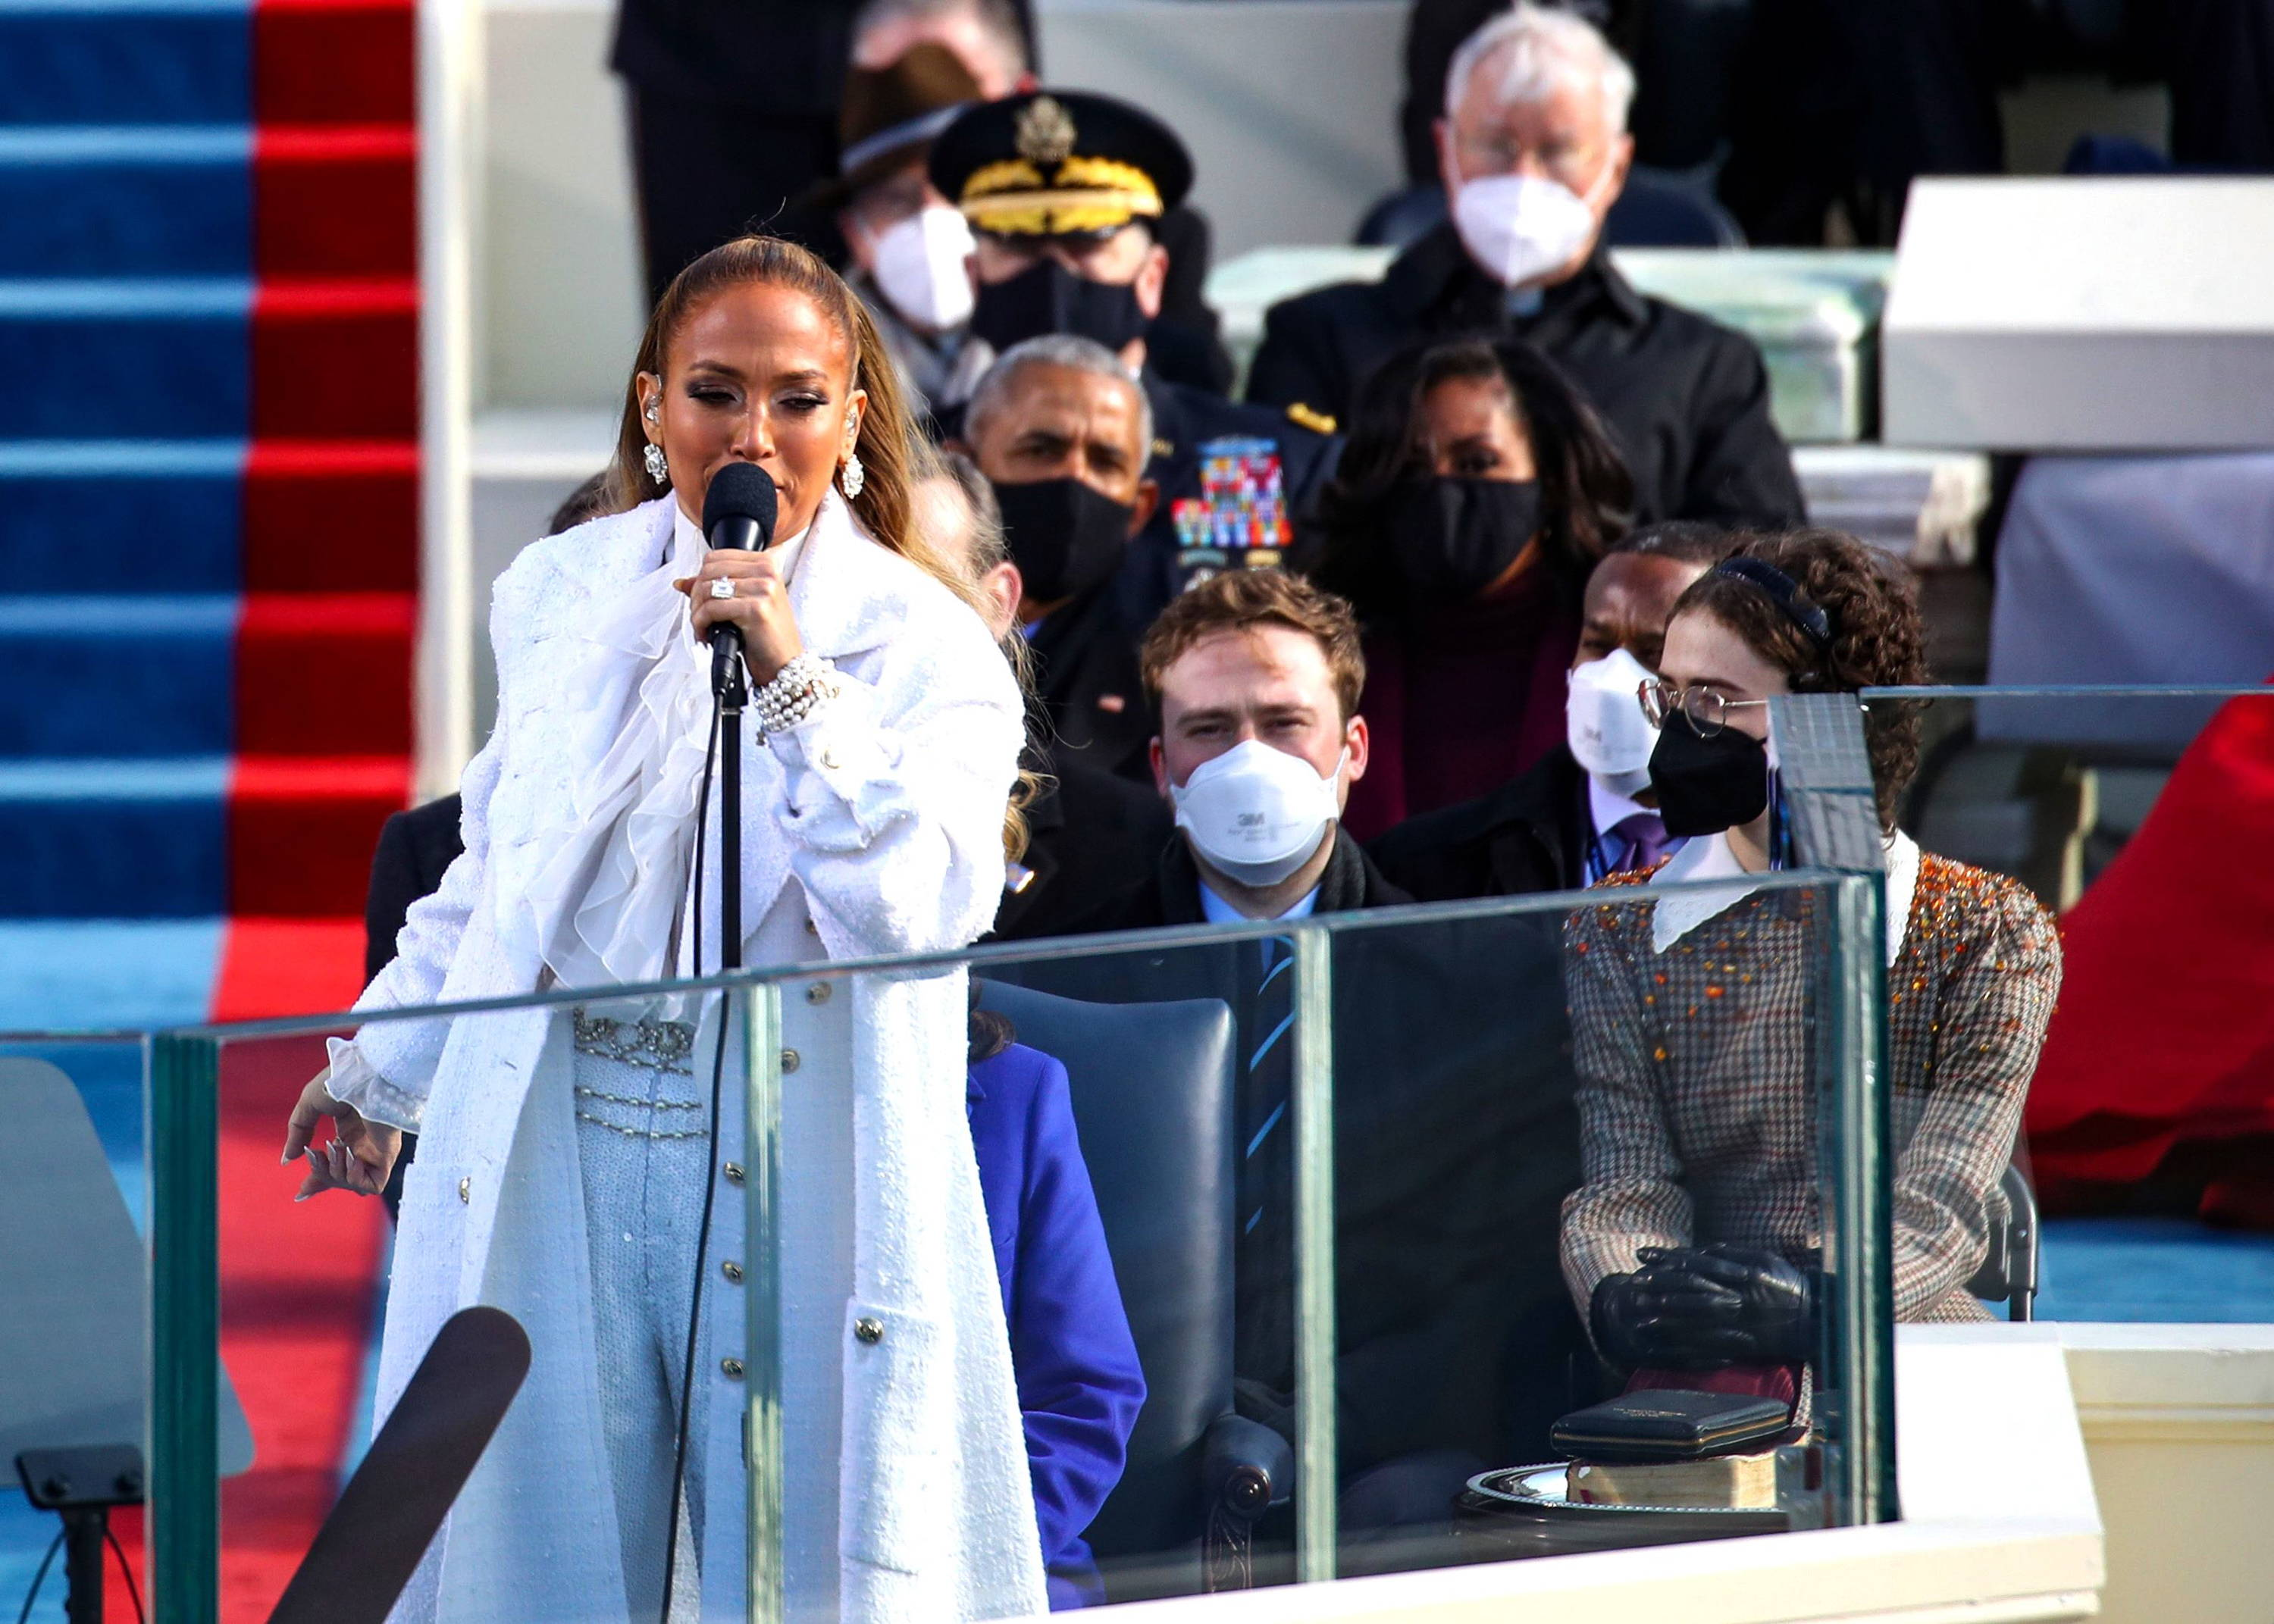 Jennifer Lopez performs at the inauguration ceremony of President Joseph R. Biden wearing a white outfit